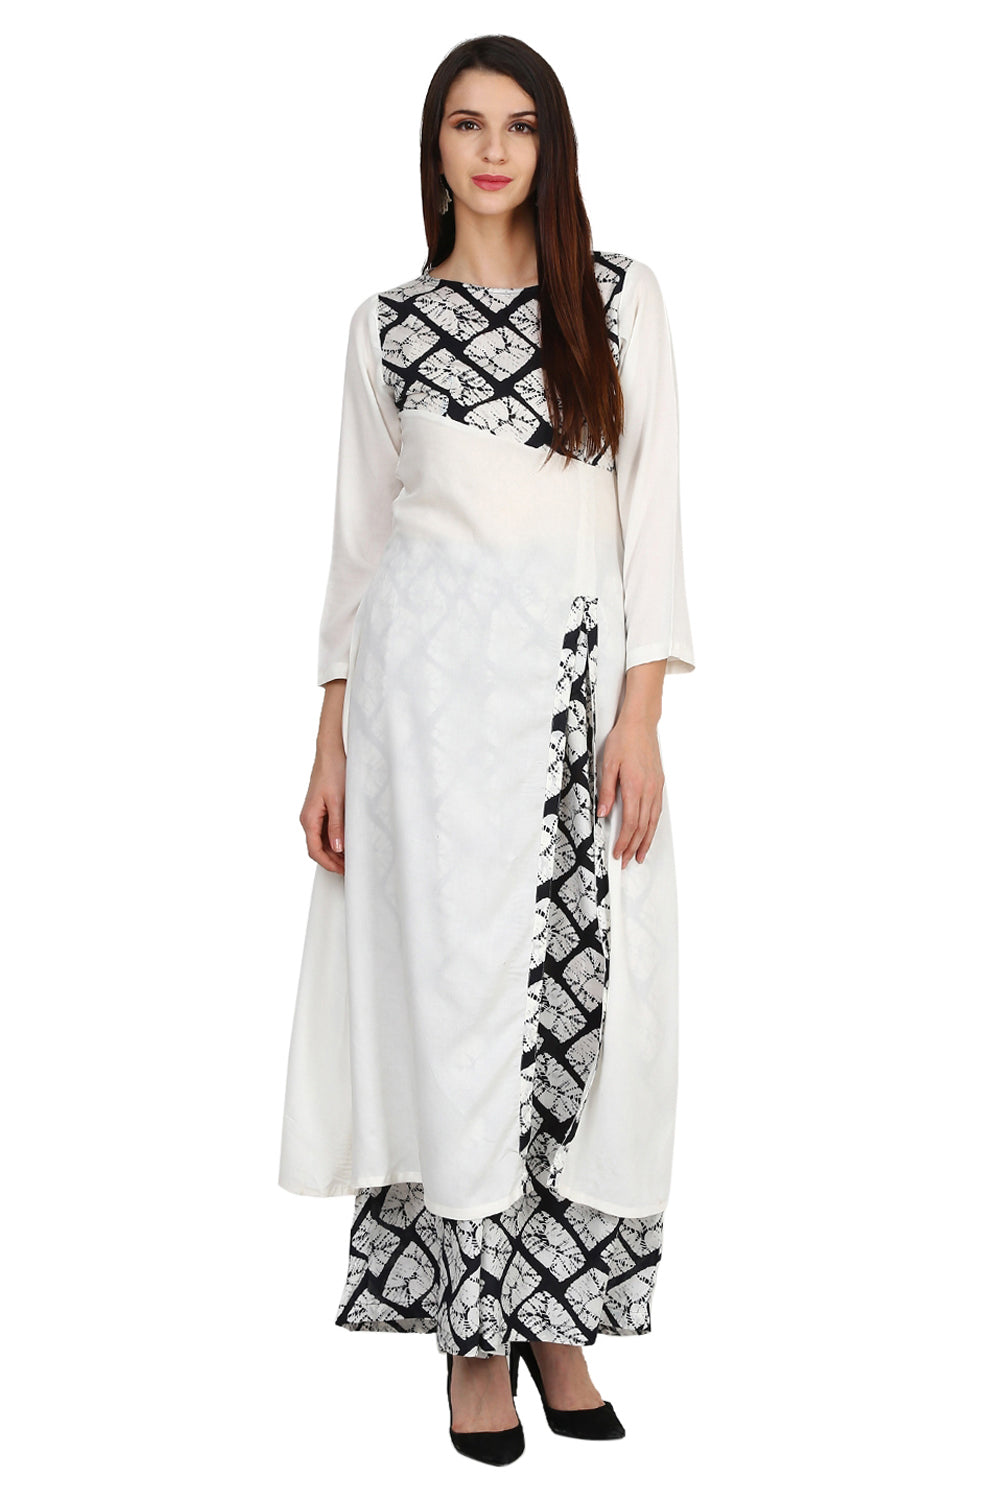 Castle Off-White Rayon Side Slit Kurta With Printed Palazzo - Castle Lifestyle